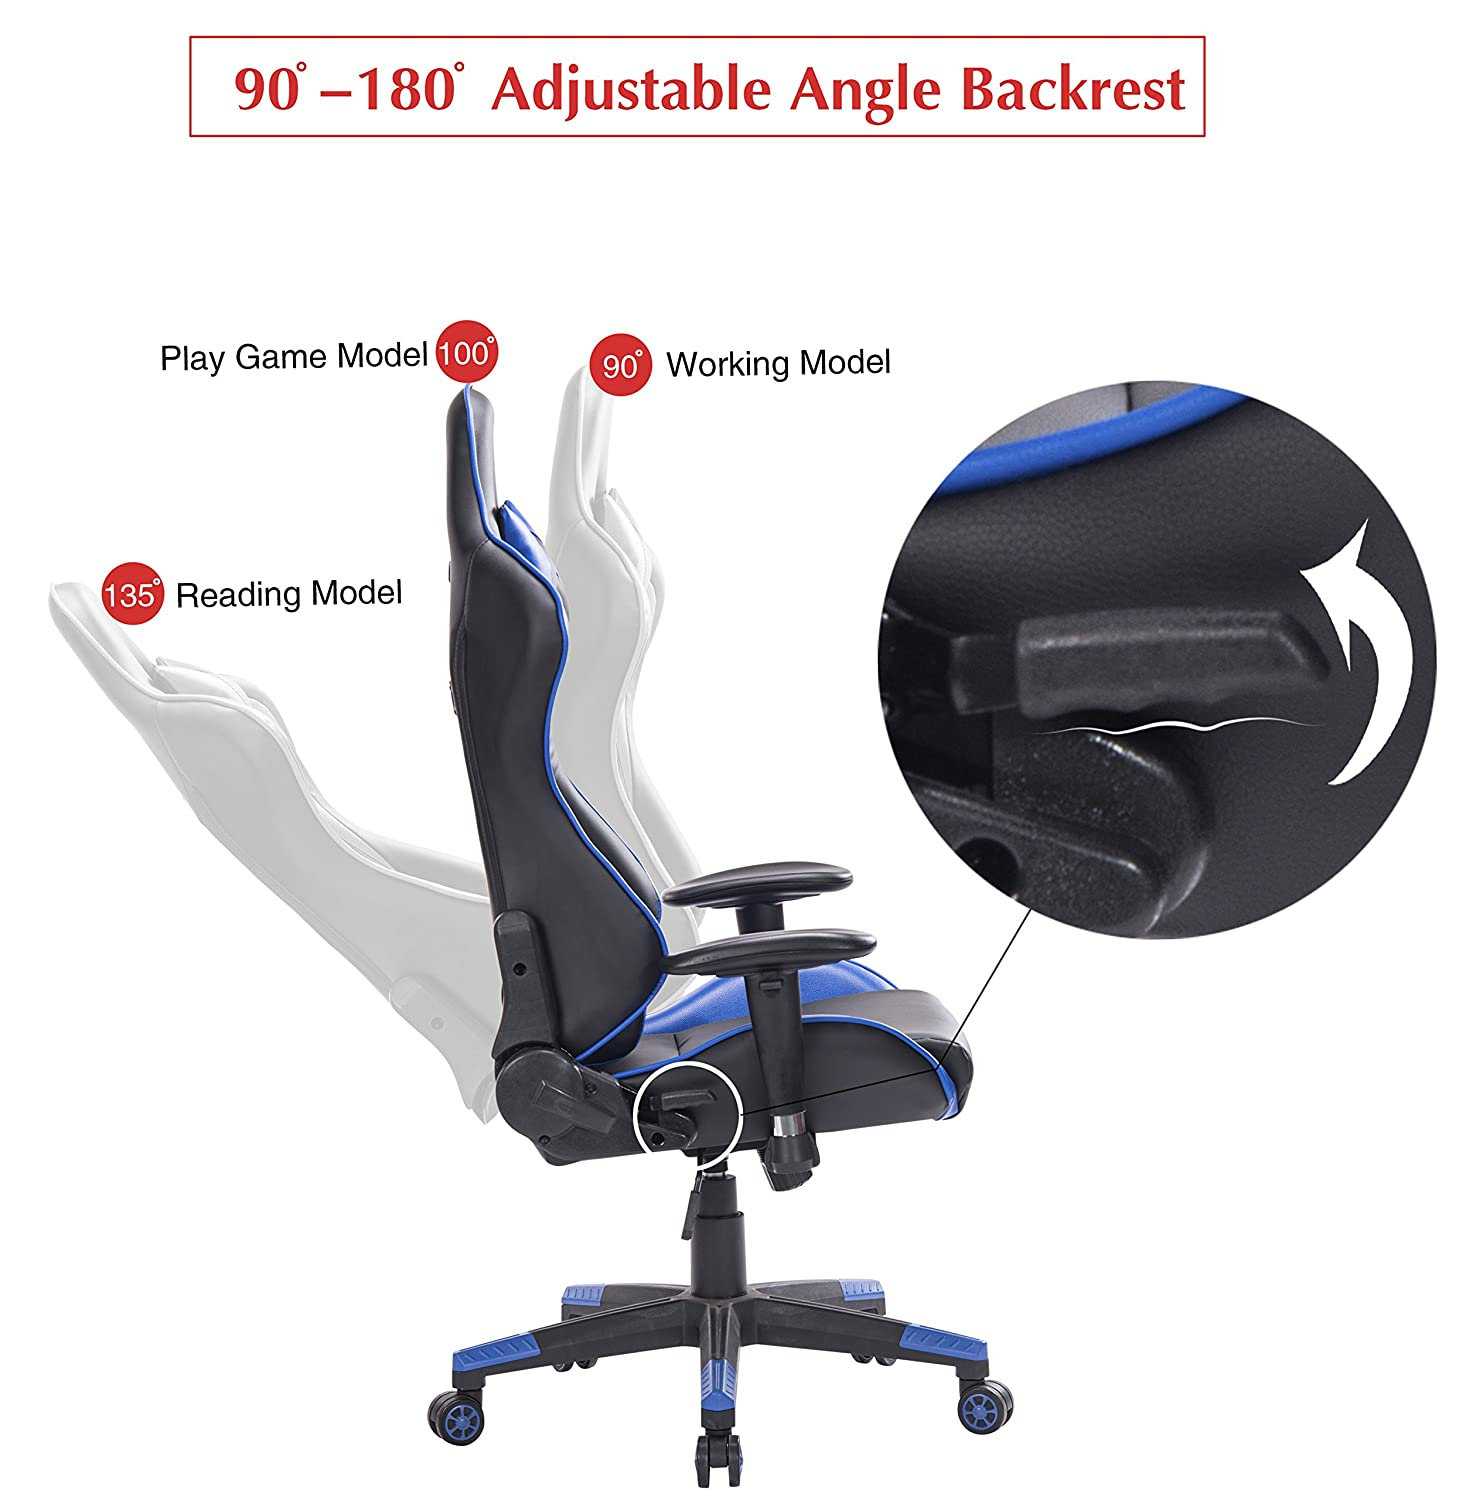 Amazon Top Gamer PC Gaming Chair Video Game Chairs for